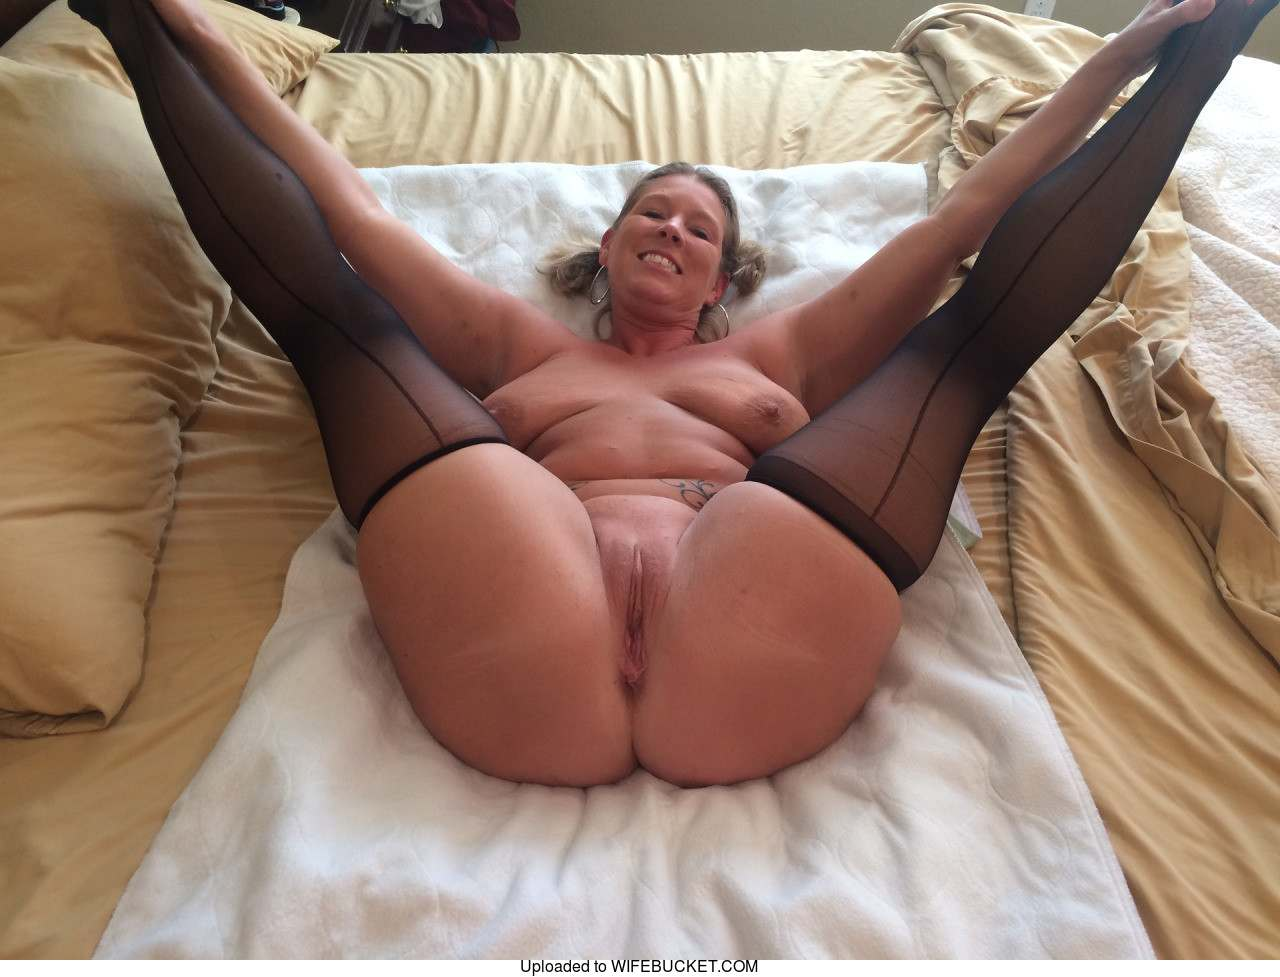 22 User-Submitted Photos Of Real Milf Wives And Their -6671